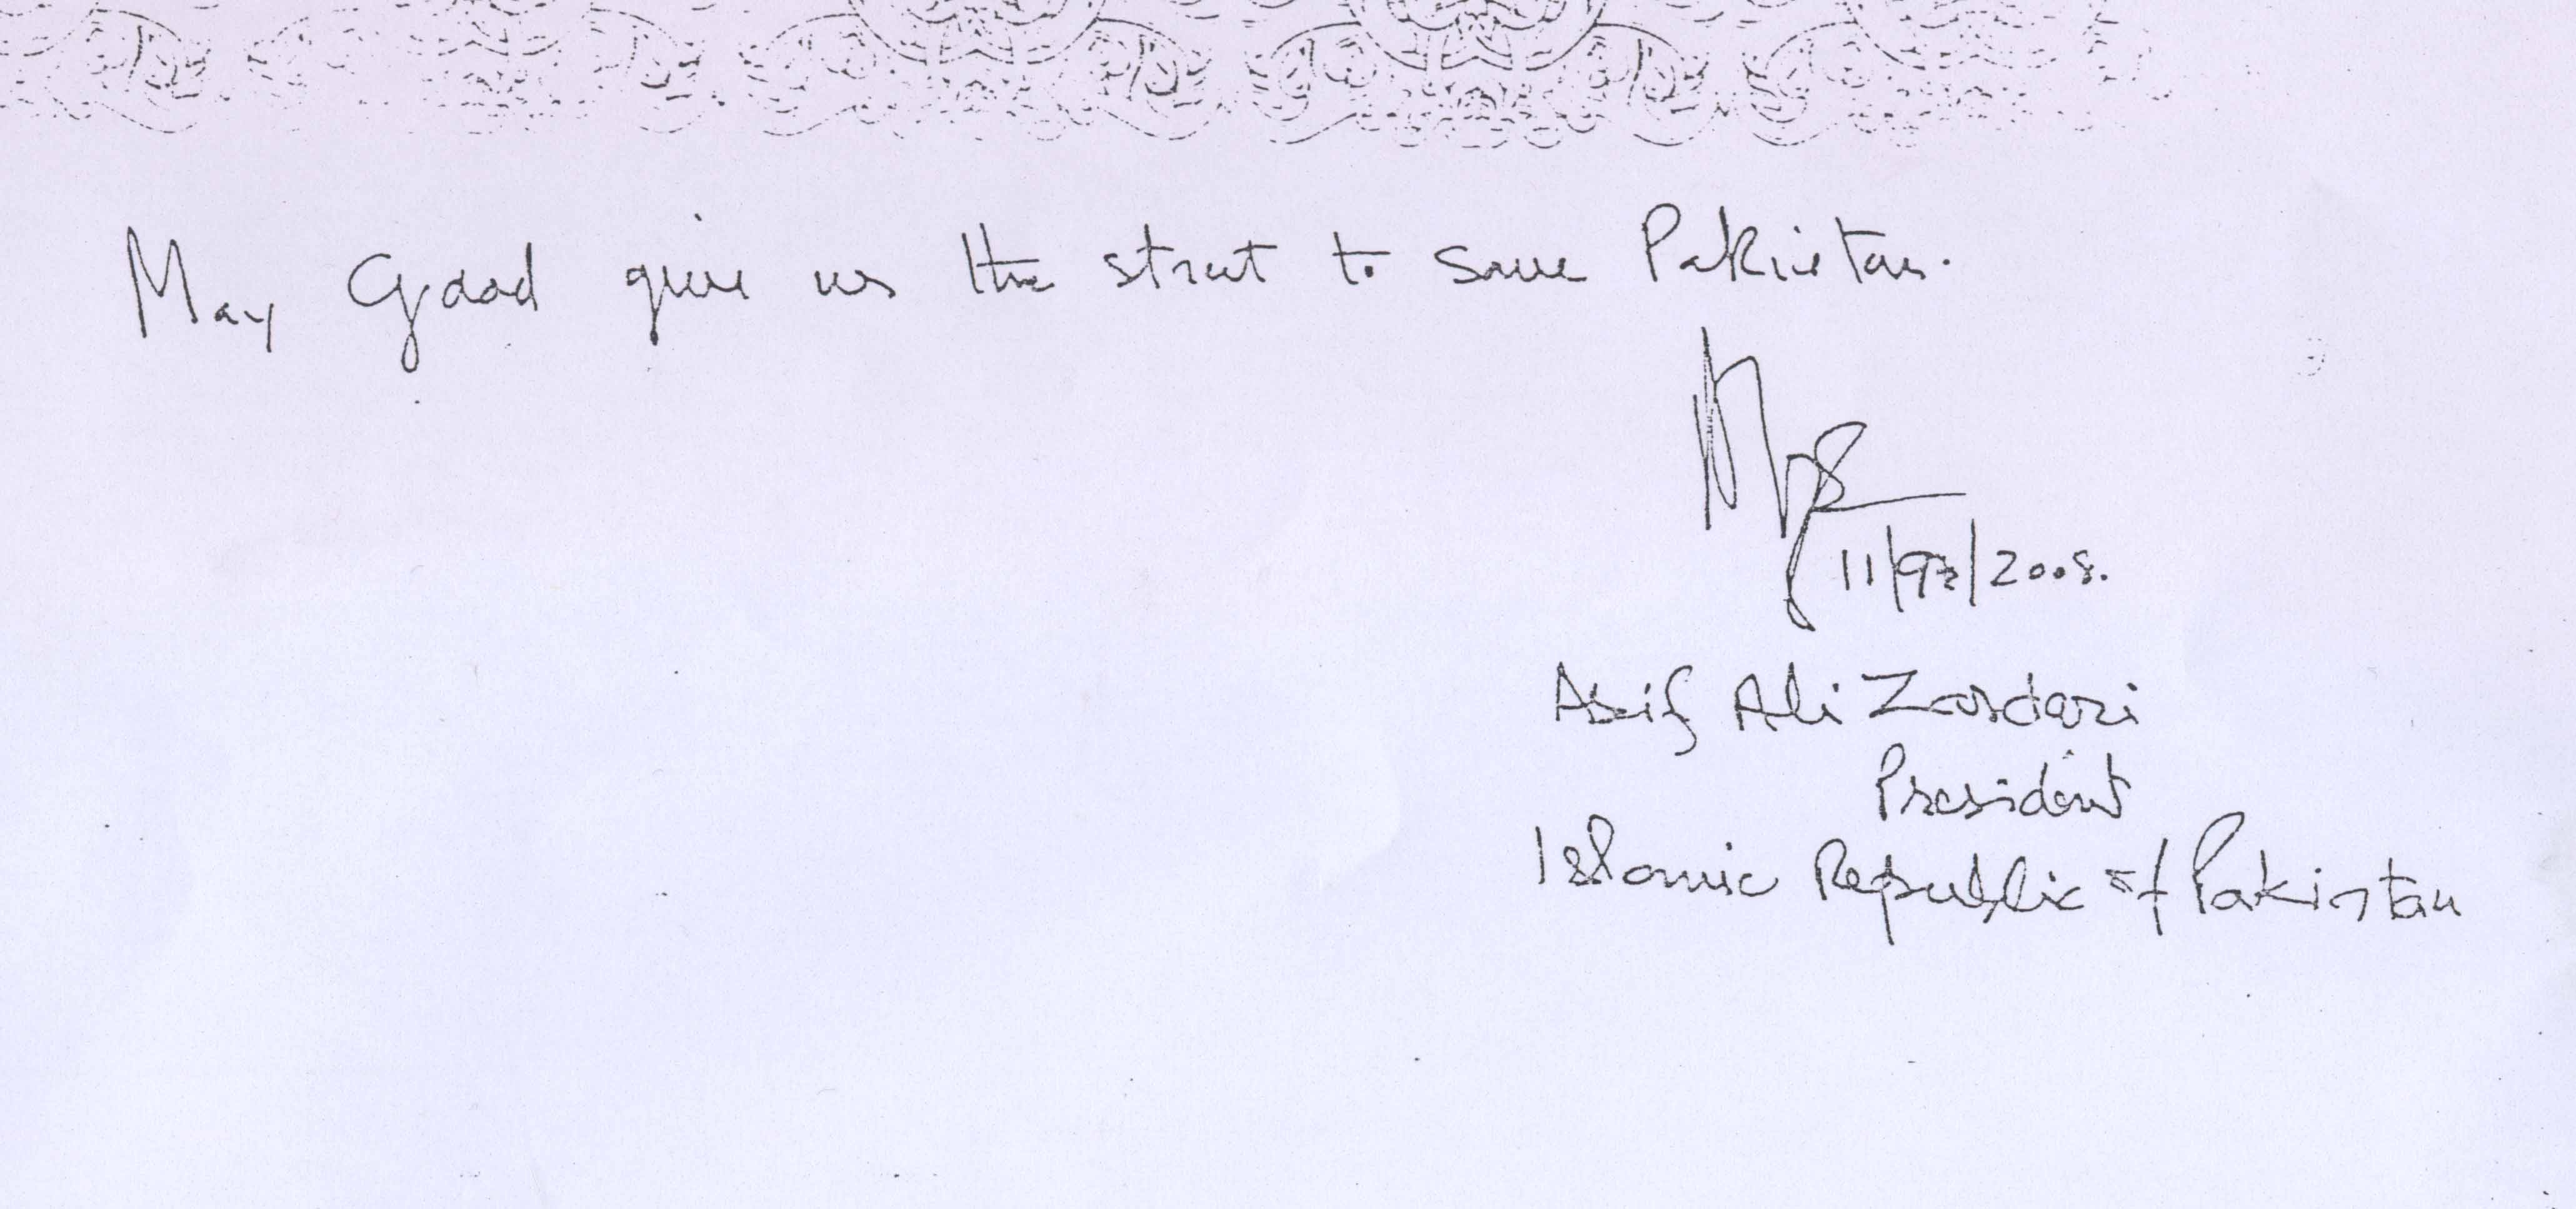 On Sept 11/ 2008, President visited Quaid's tomb and this is what he